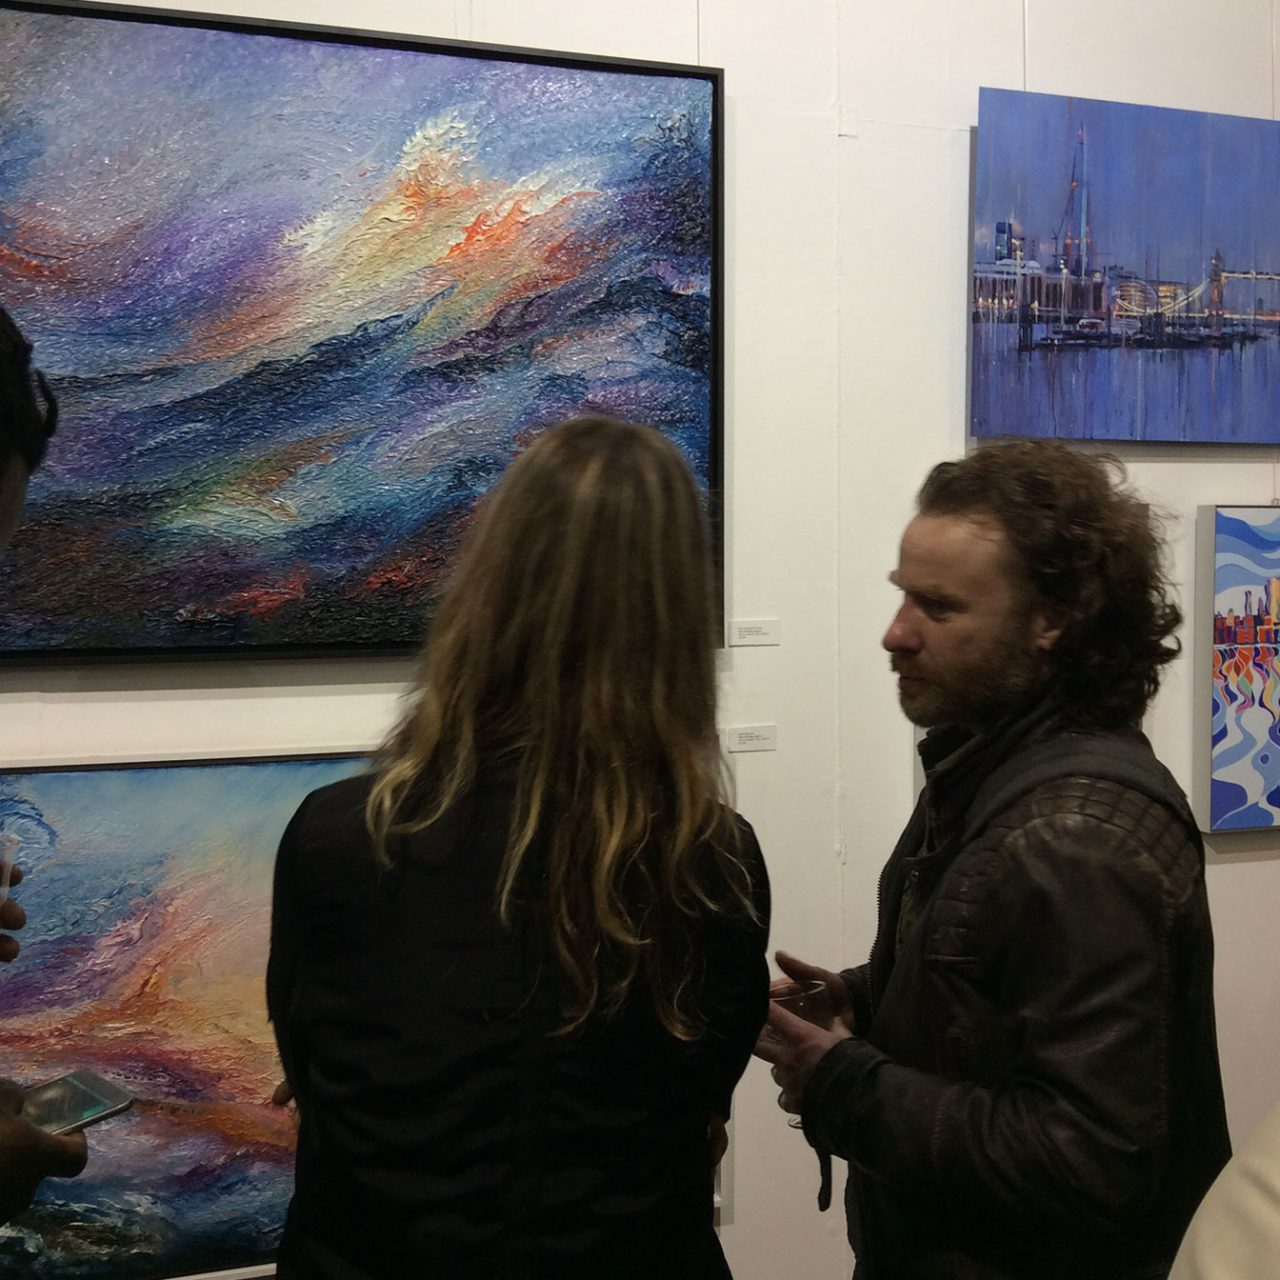 Focus LDN at the Menier Gallery, London Bridge, February 2017